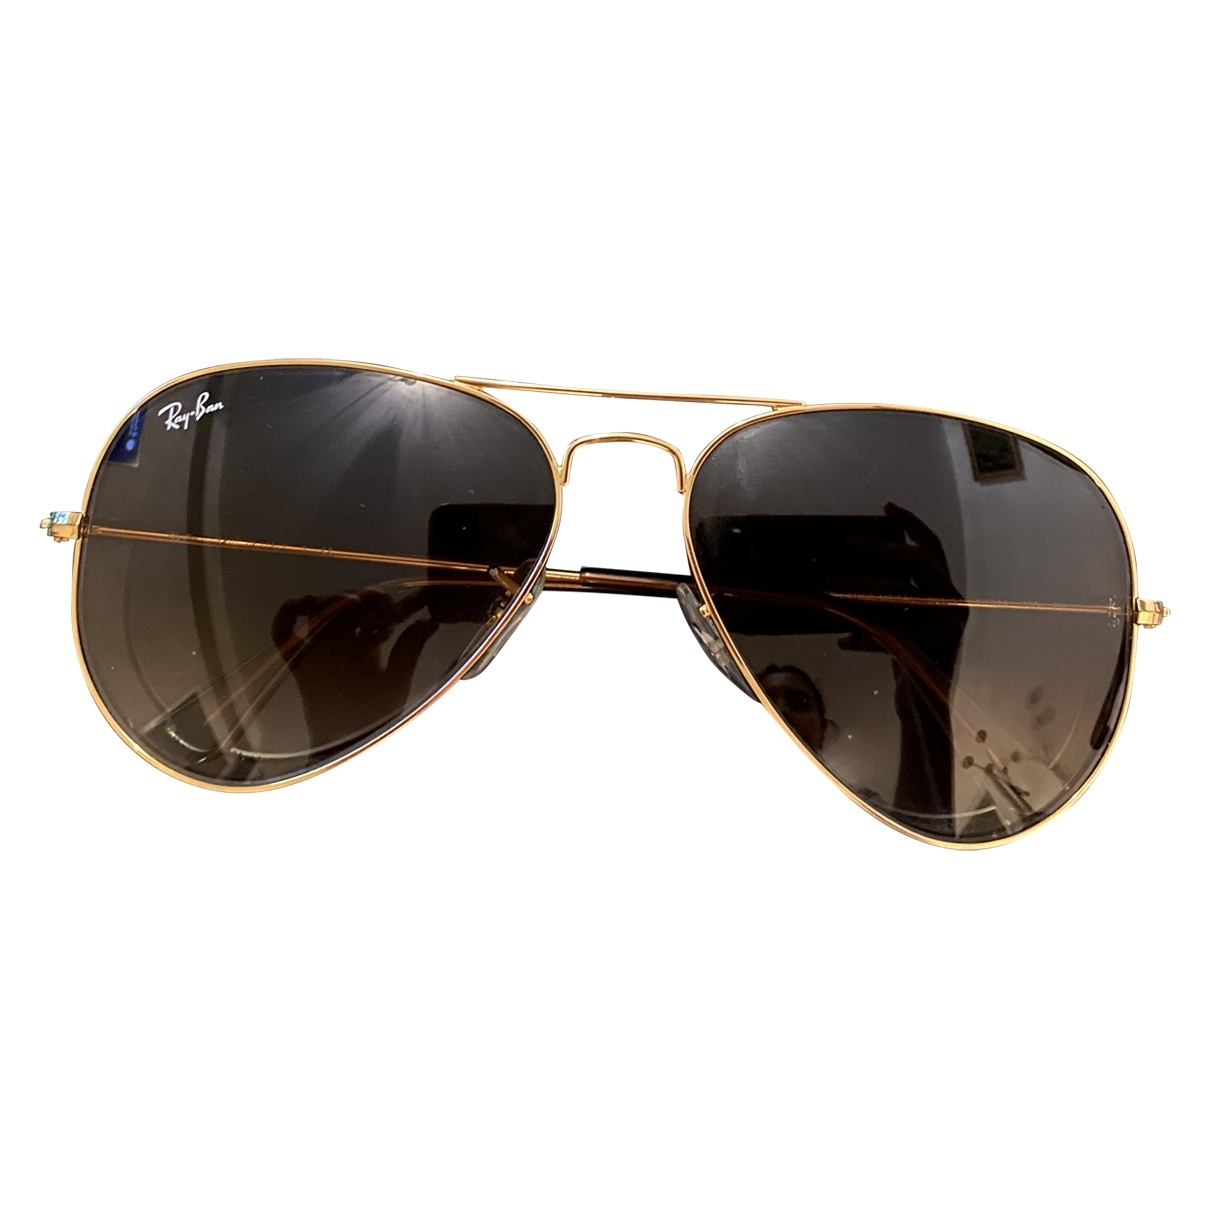 Ray-ban - Lunettes Aviator pour femme - dore